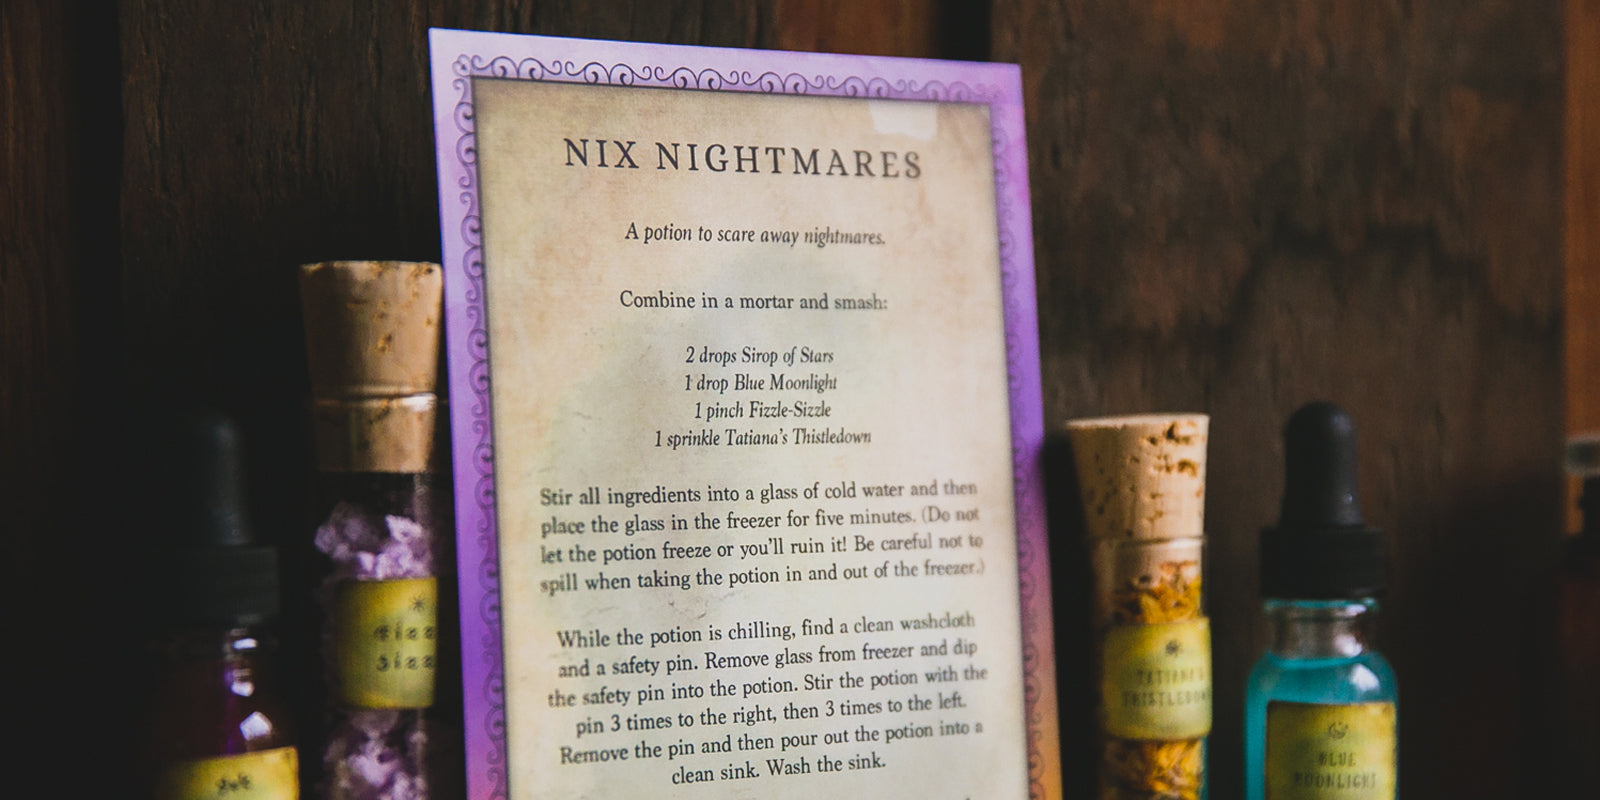 Potion Feature: Nix Nightmares